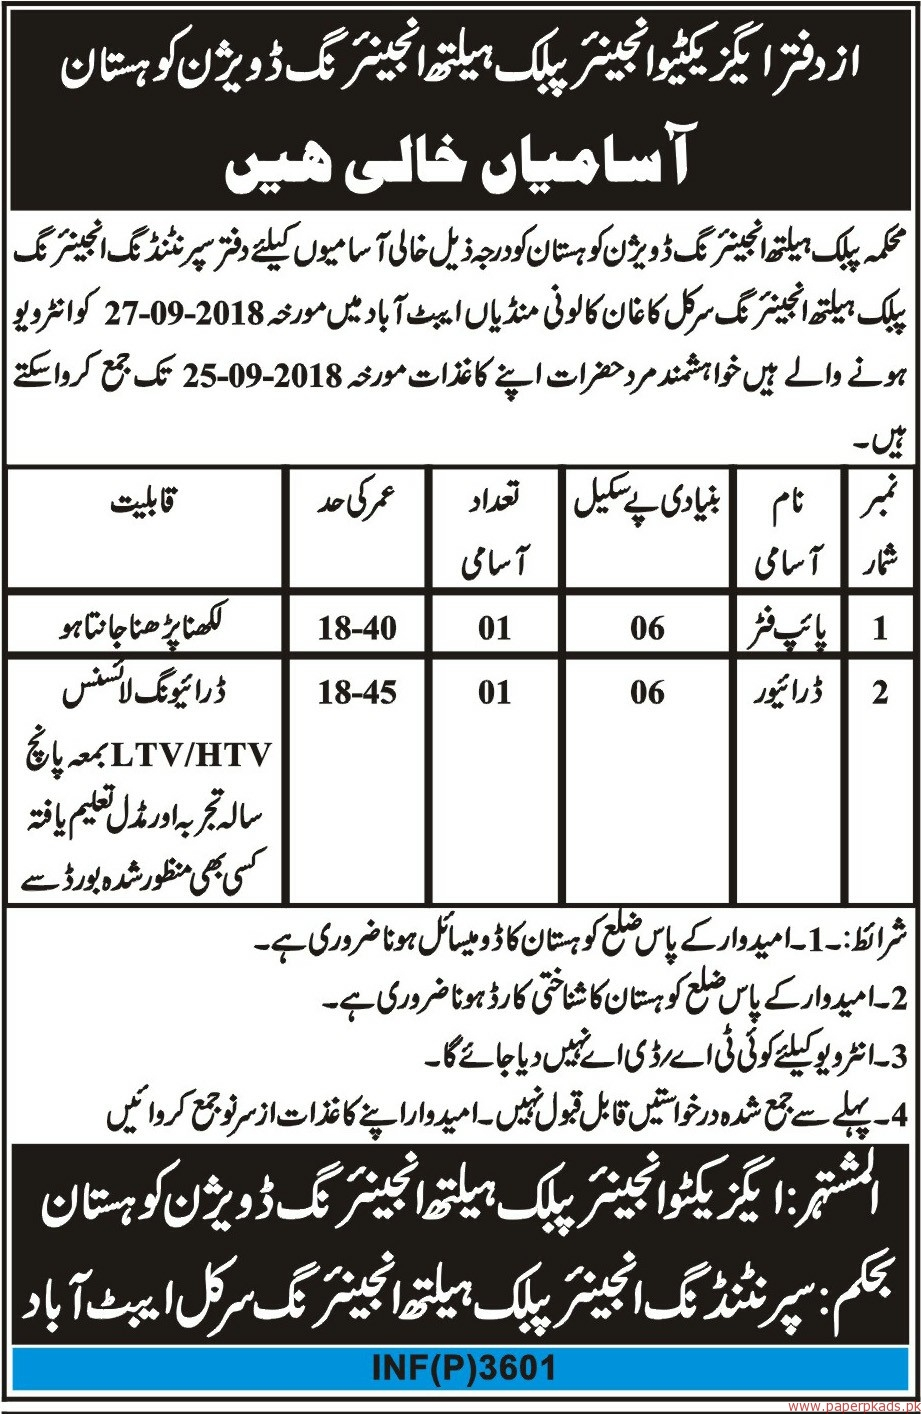 Public Helath Engineering Department Jobs 2018 Latest